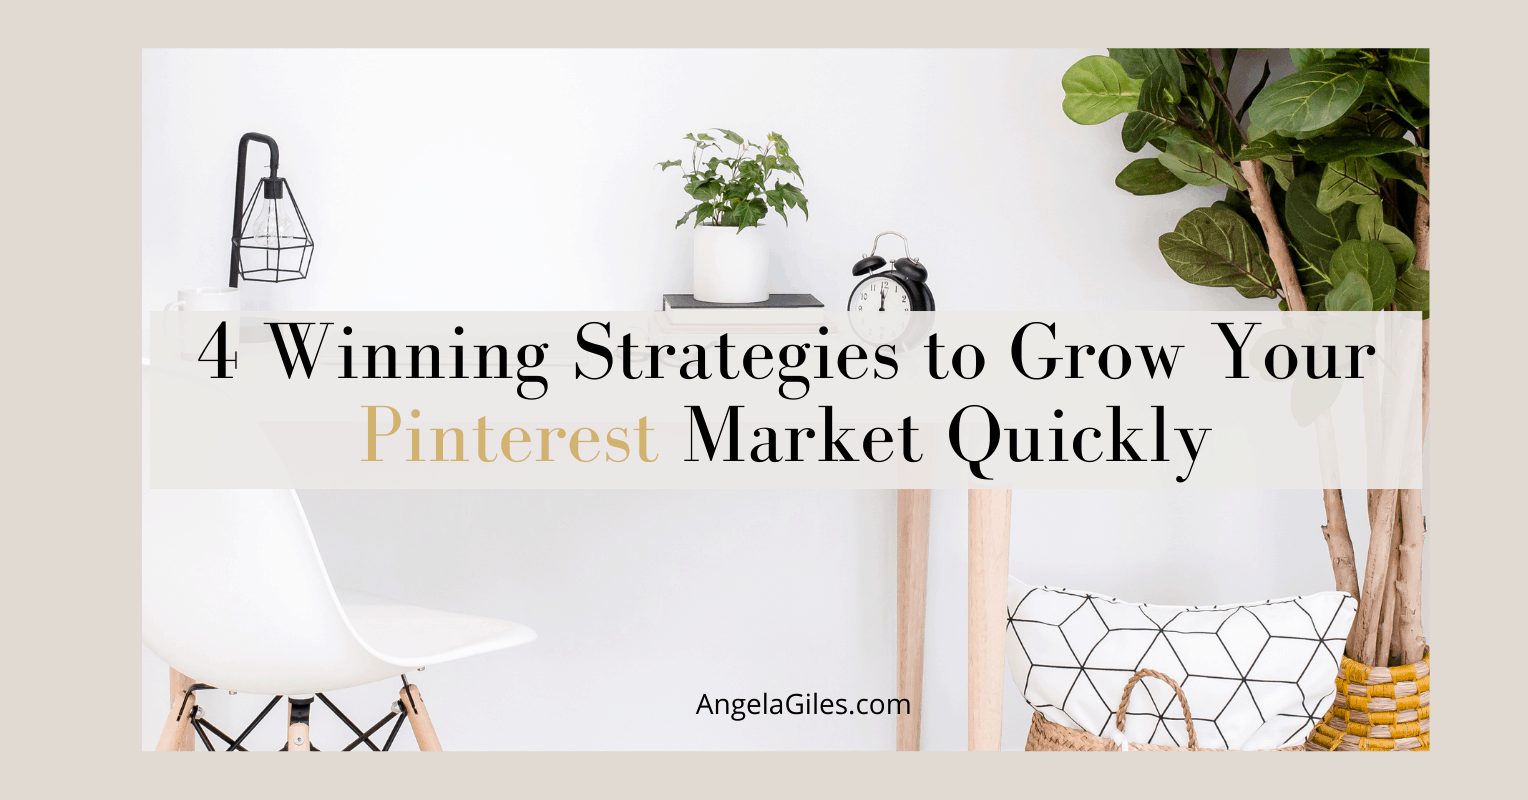 4 Winning Strategies to Grow Your Pinterest Market Quickly